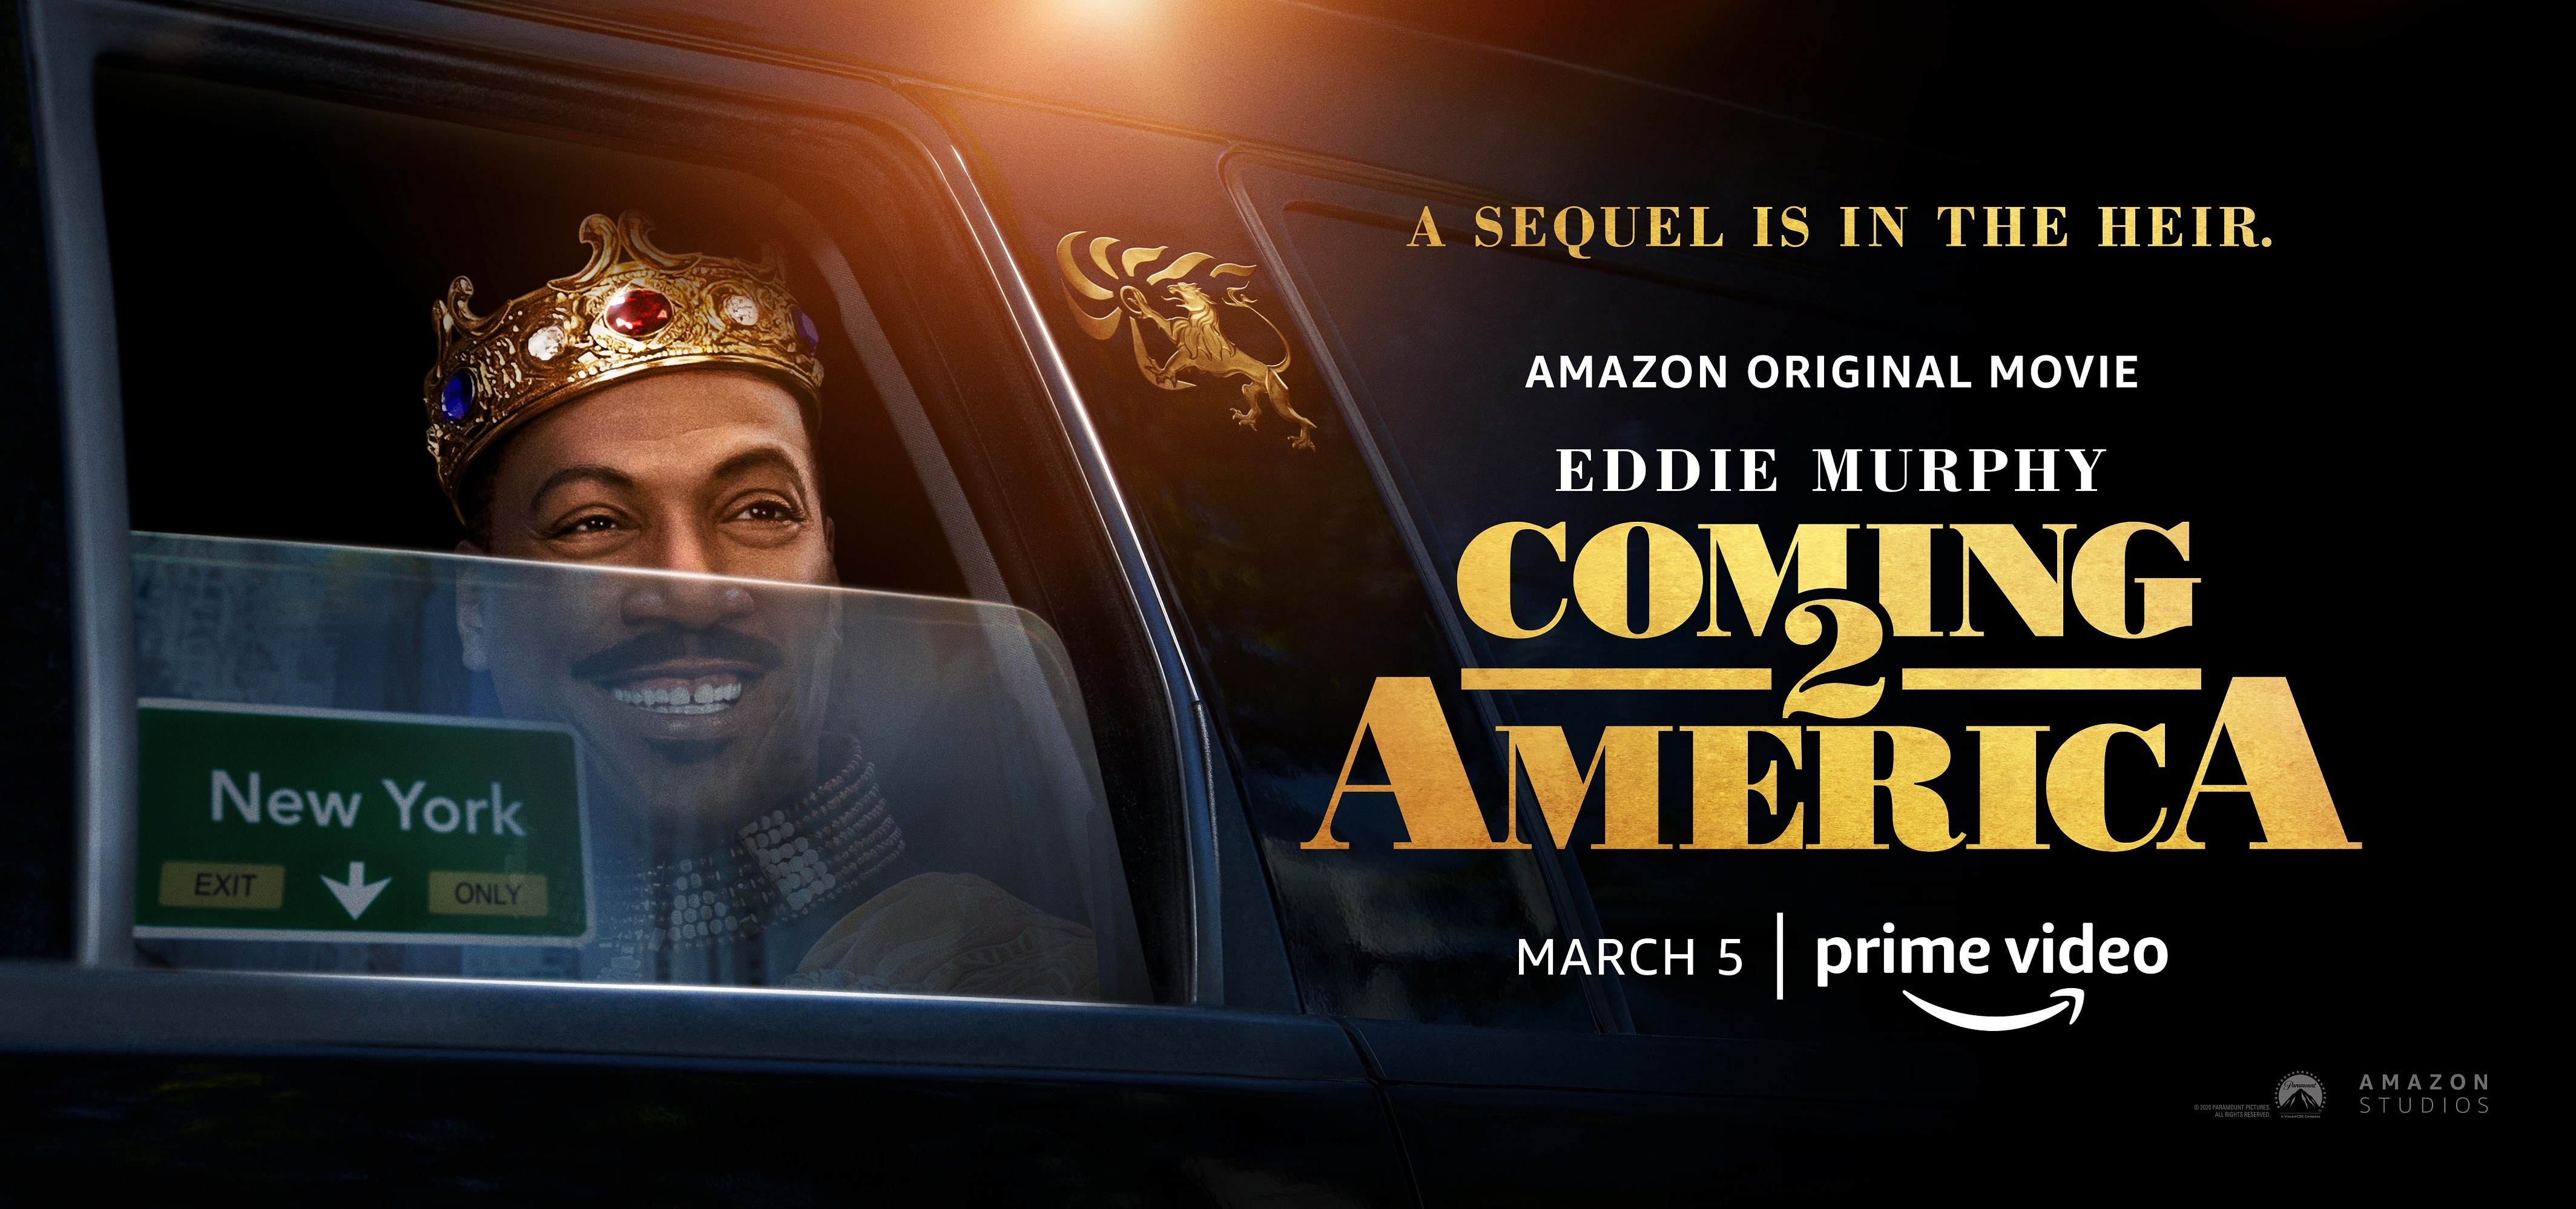 Coming 2 America'; The First Trailer & Poster For The Eddie Murphy Sequel Have Arrived! - Screen-Connections